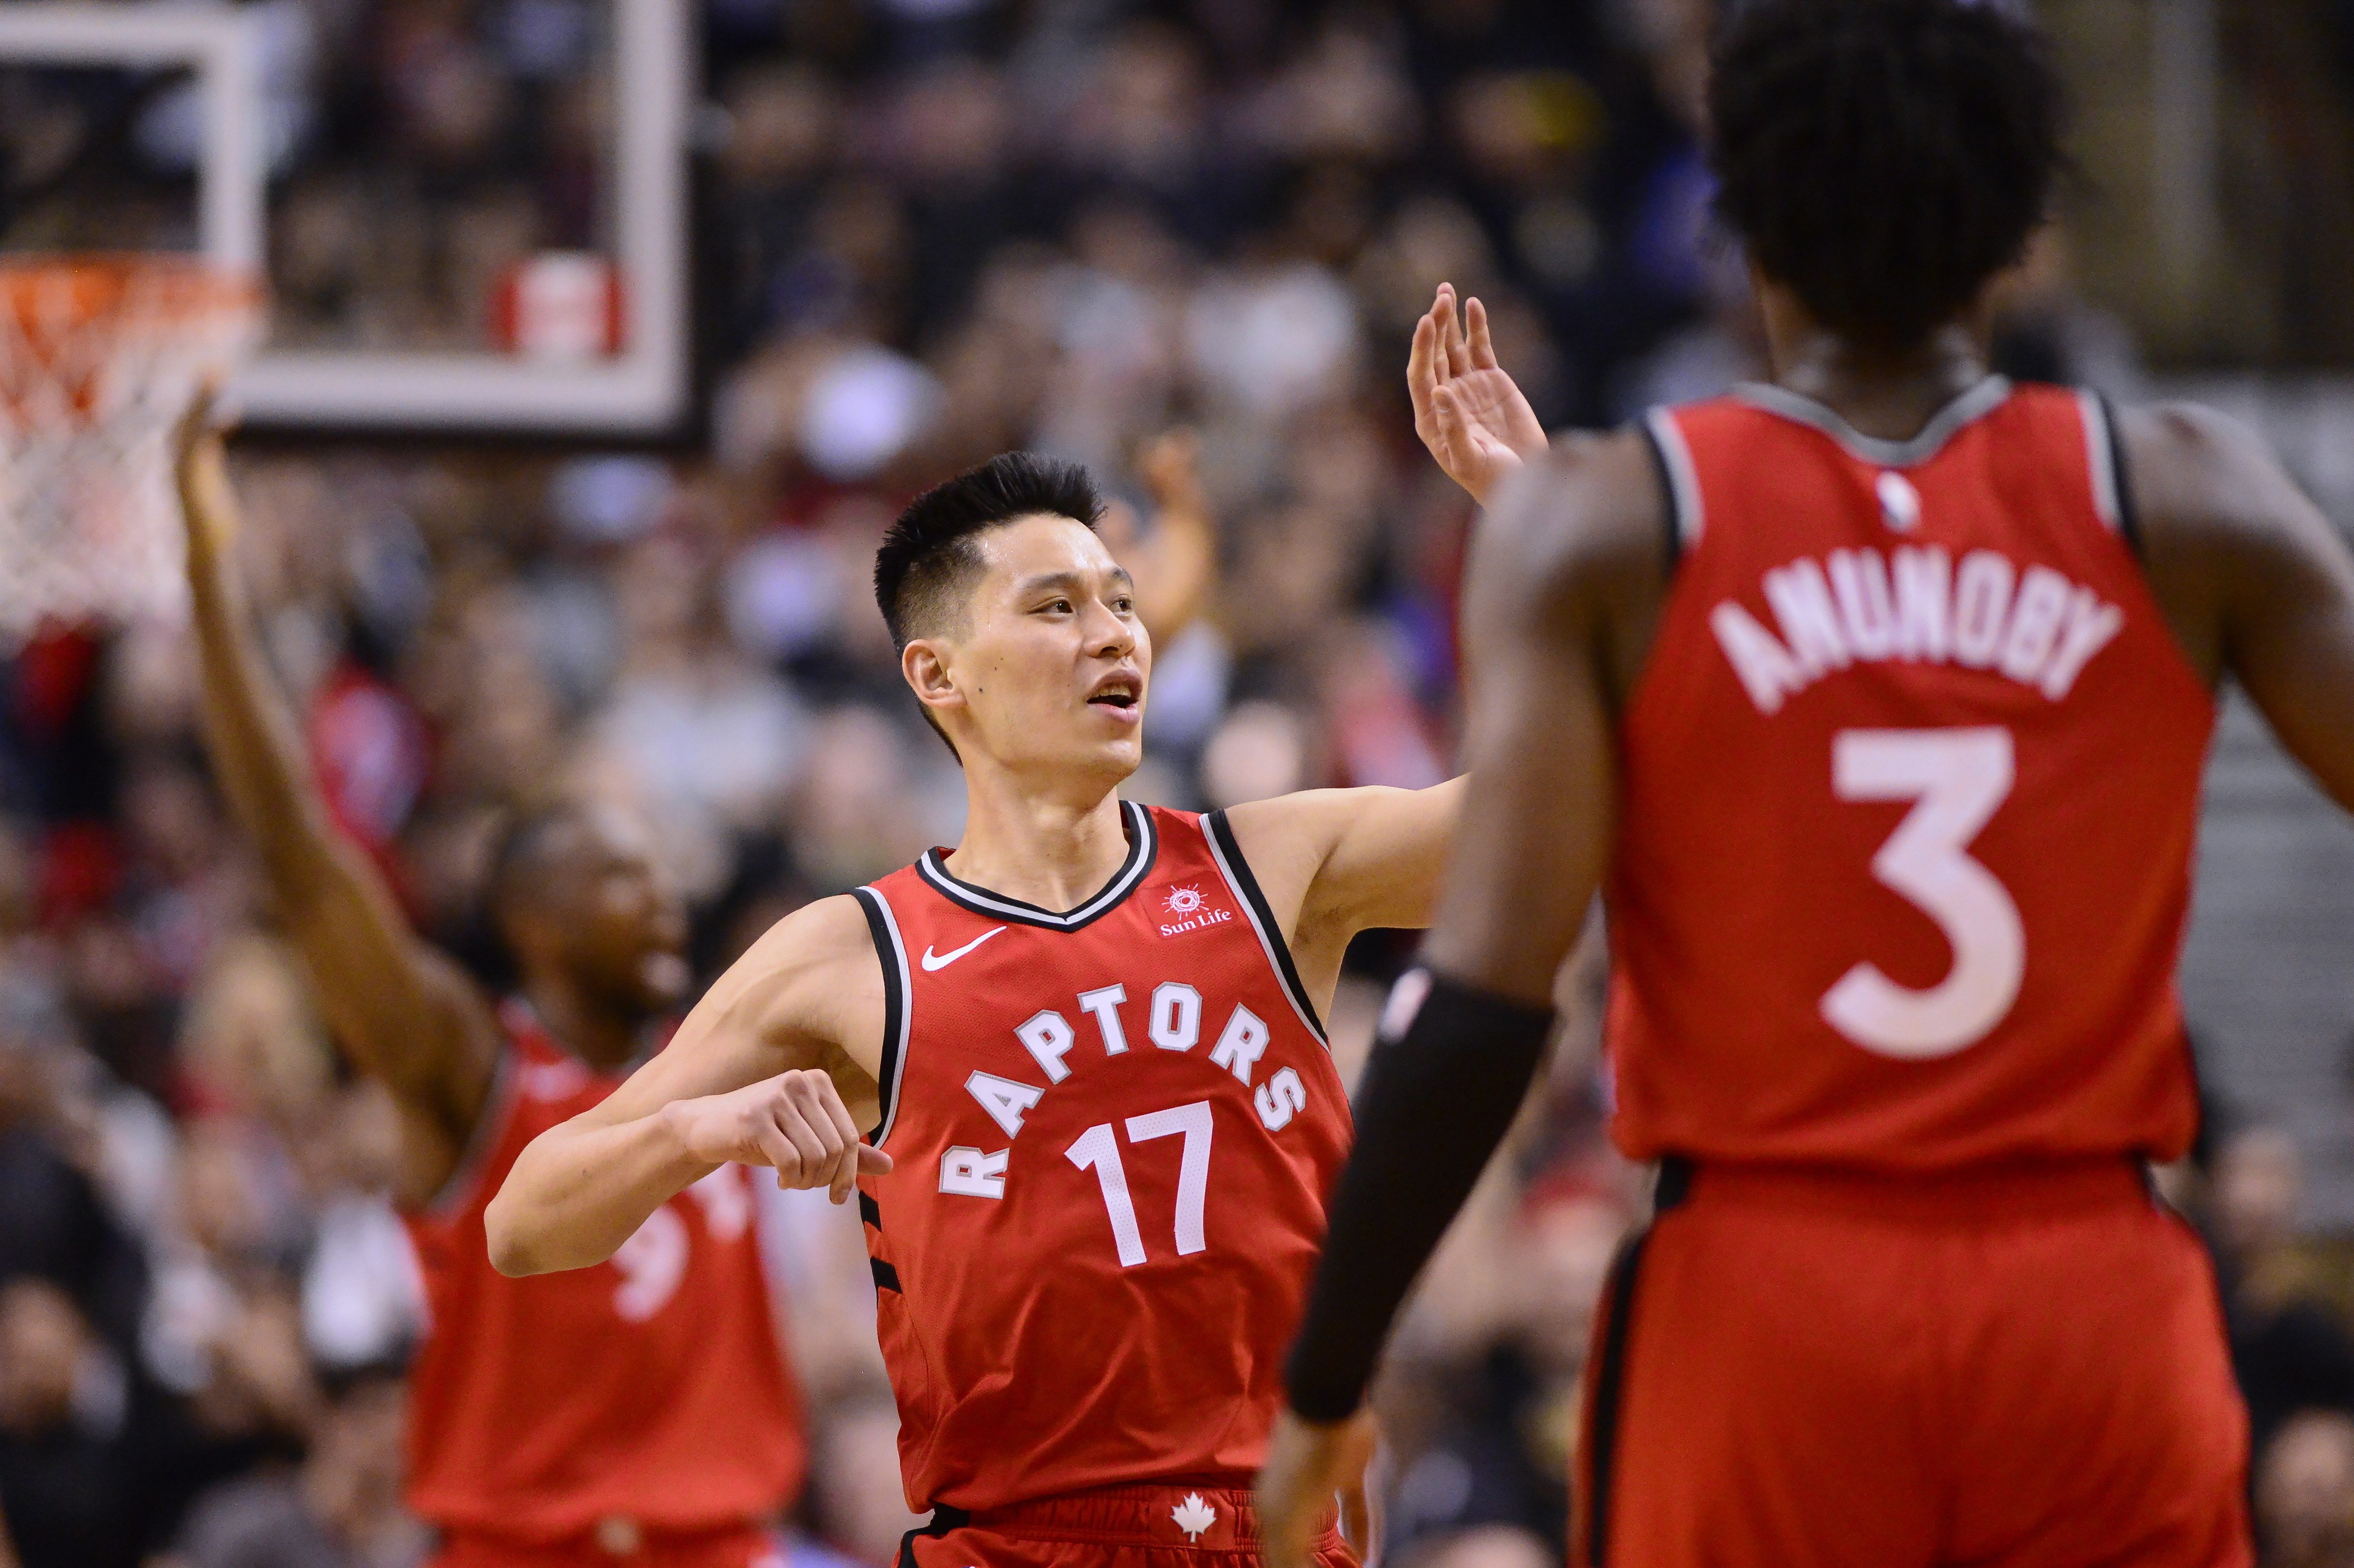 59a5318d6bdd5 Jeremy Lin 'offered US$3 million' to sign for Beijing Ducks in the ...